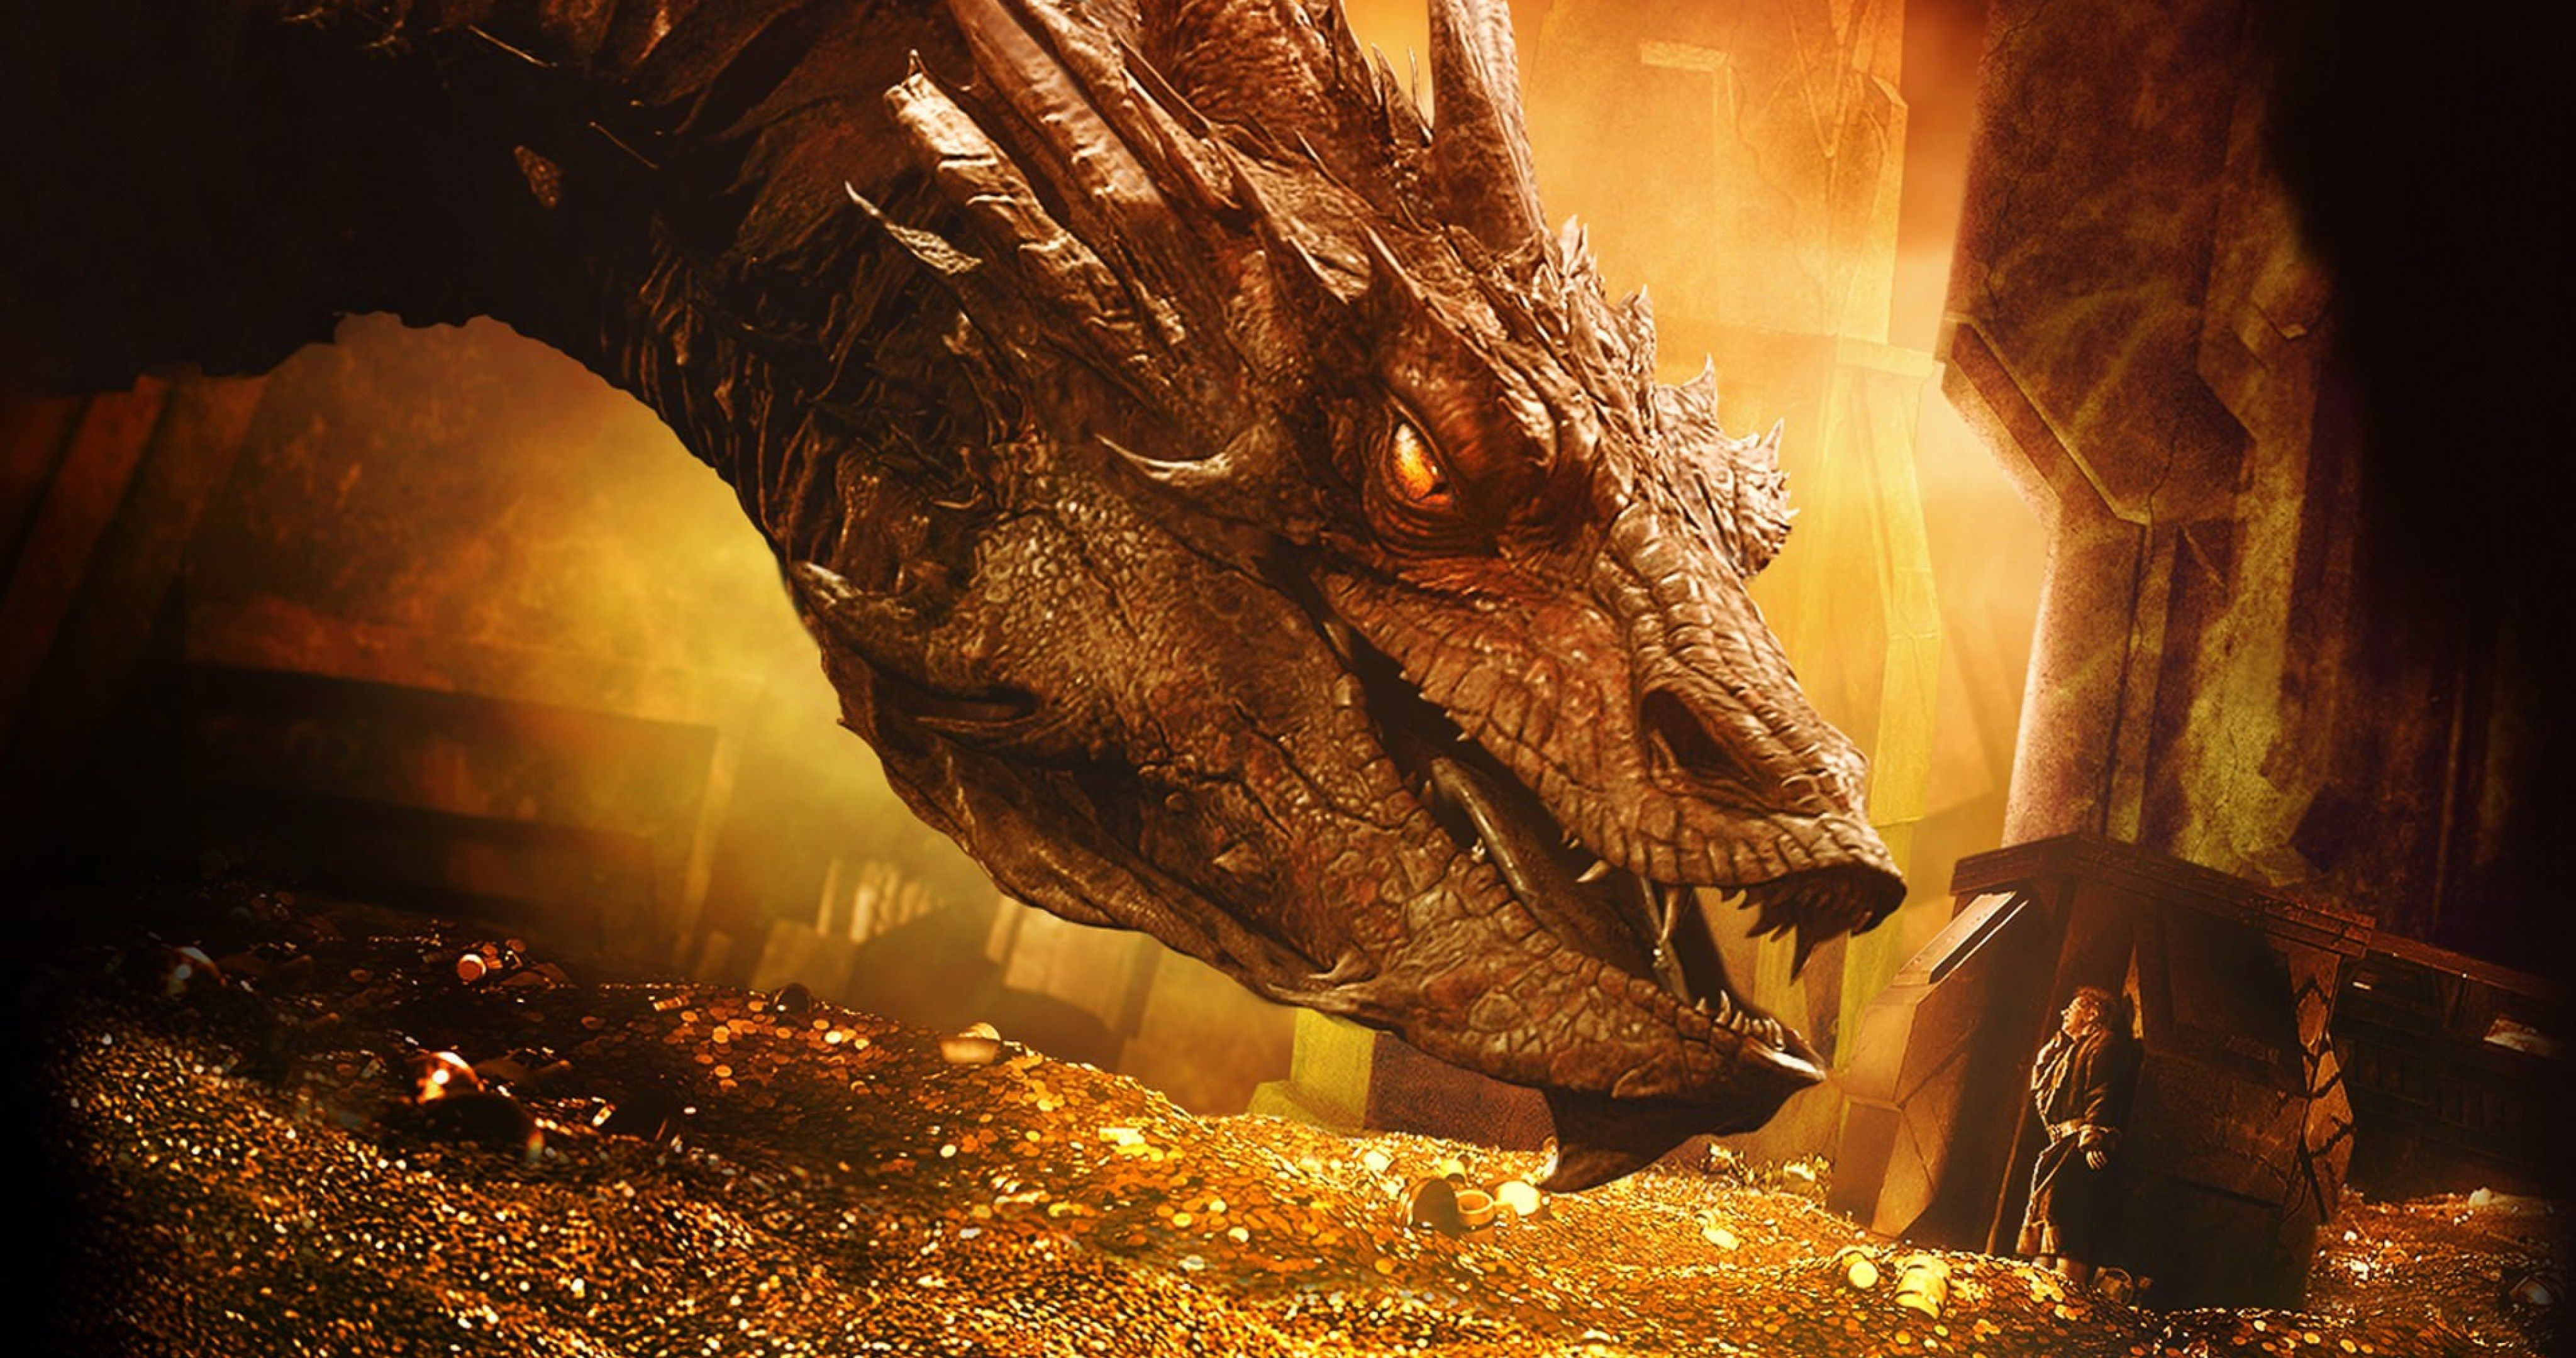 dragin in the hobbit the desolation of smaug 4k ultra hd